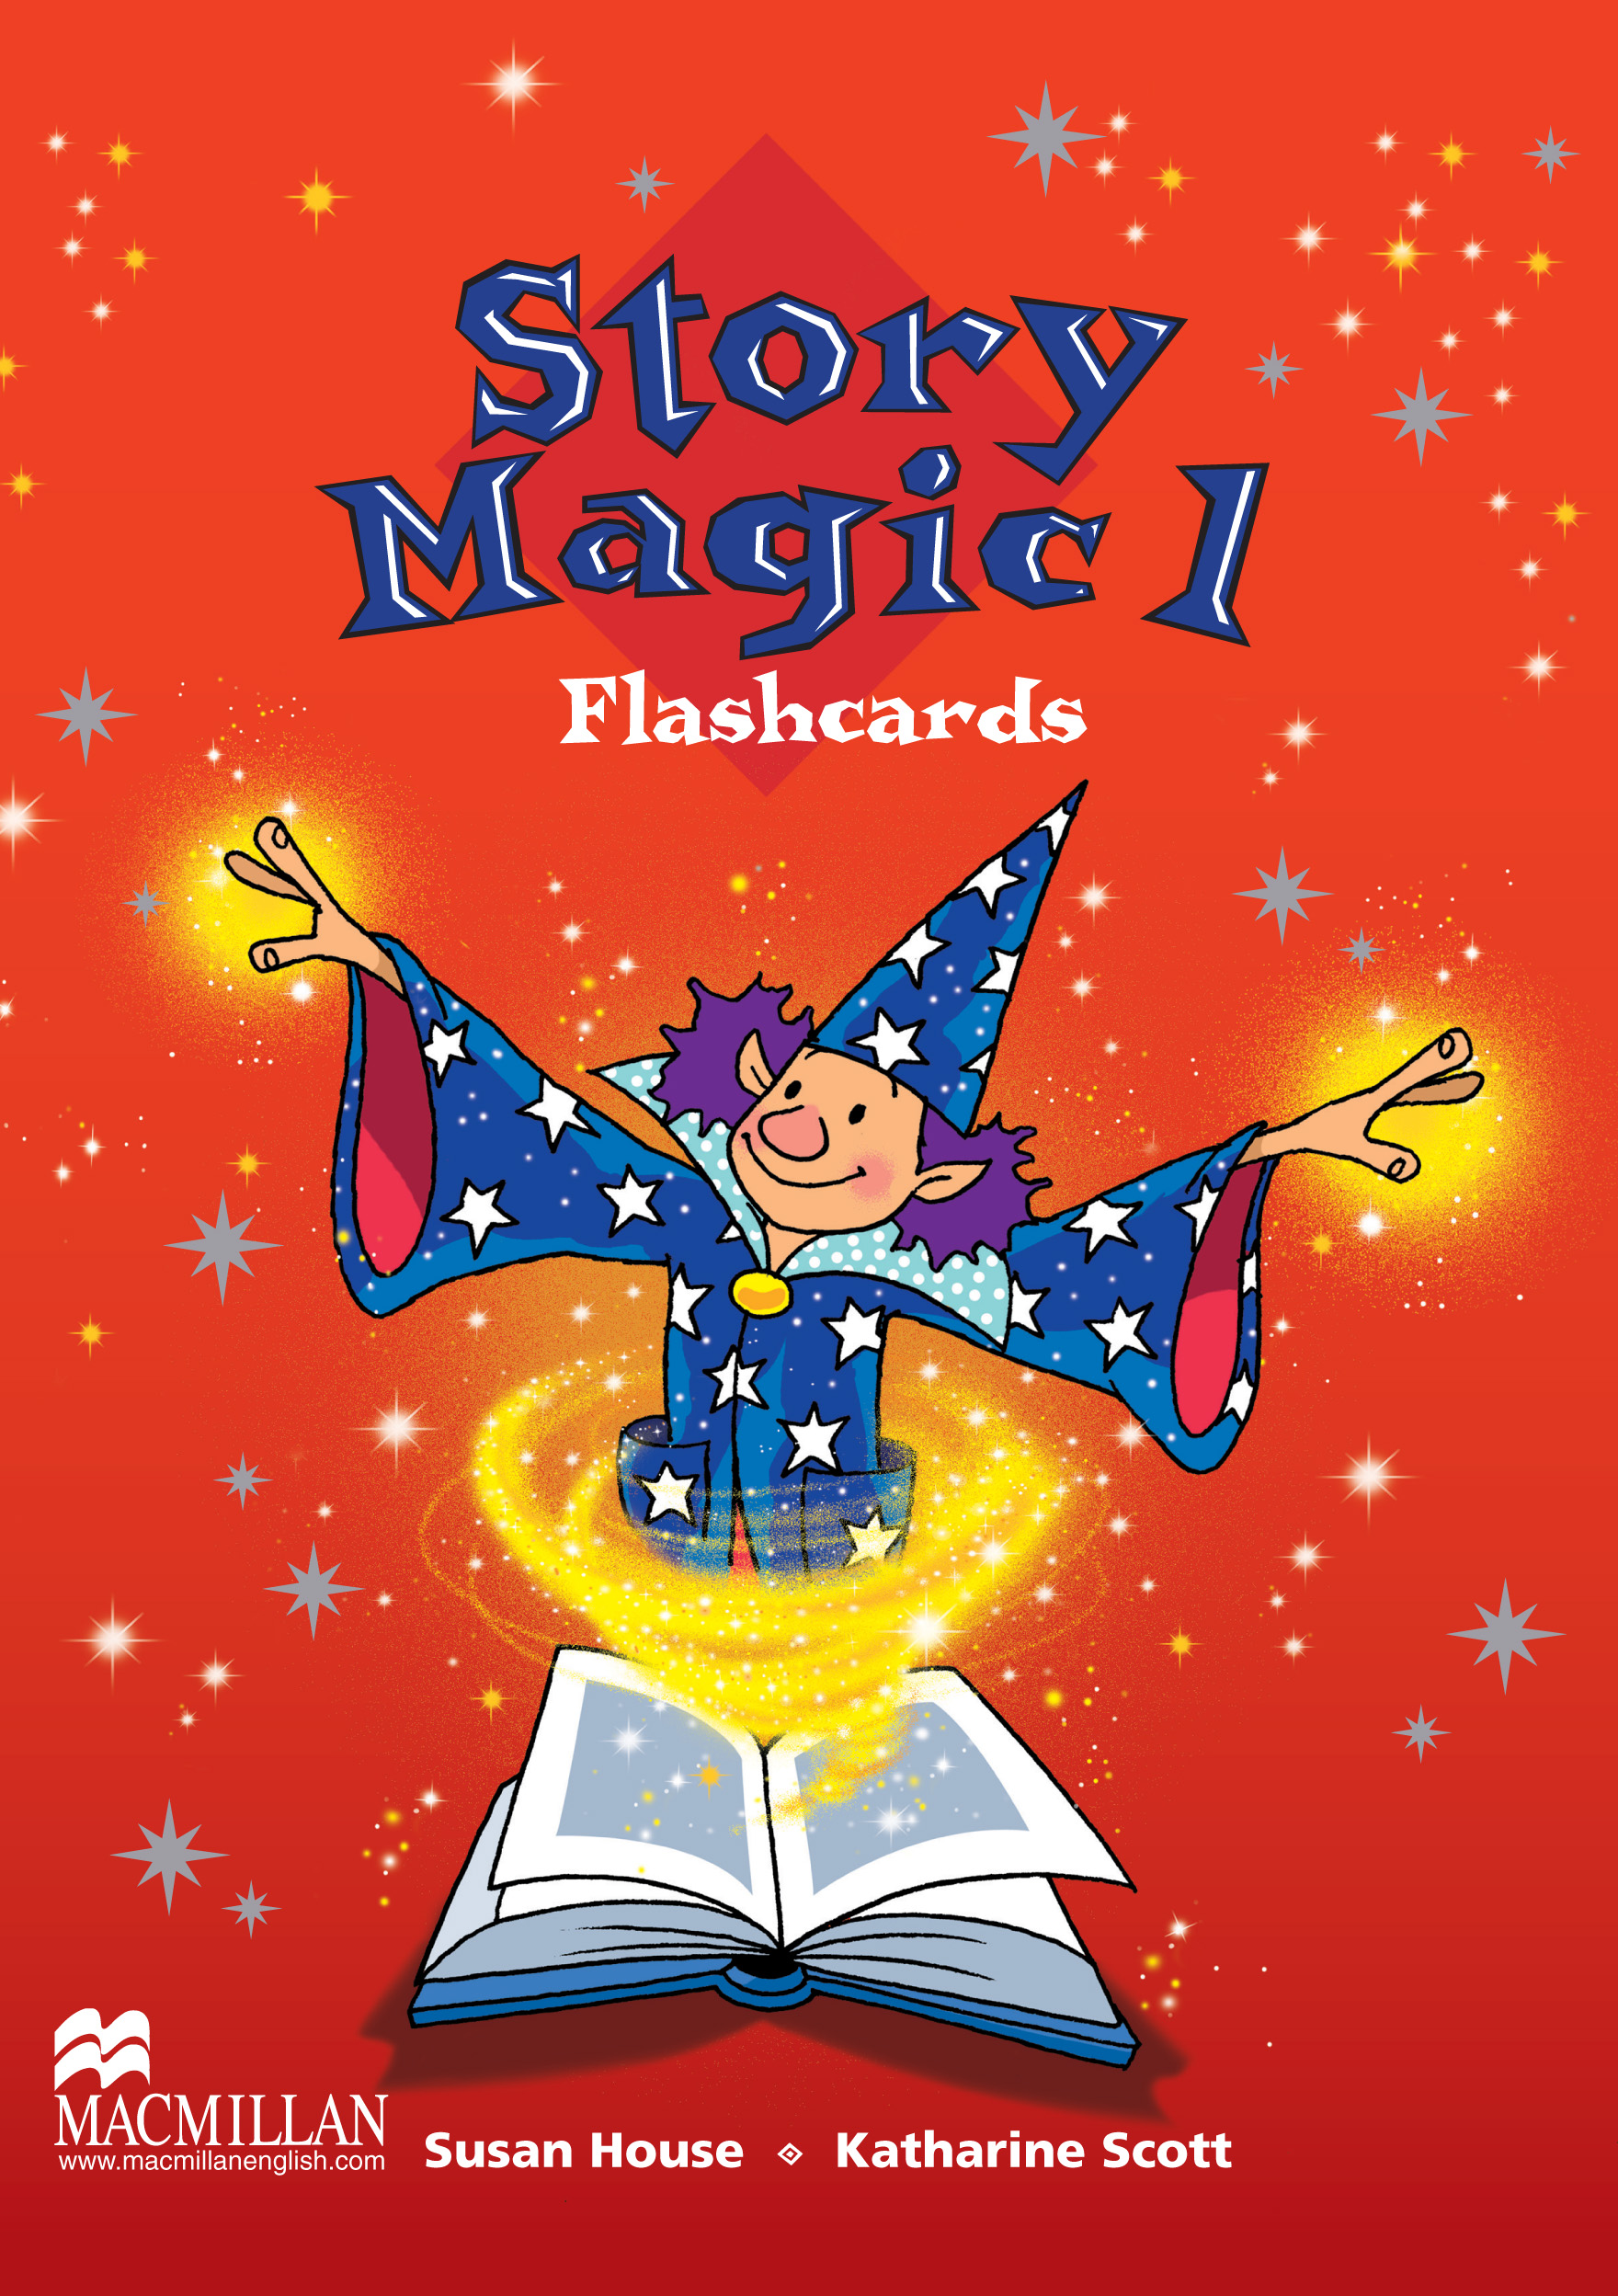 Story Magic 1 Flashcards